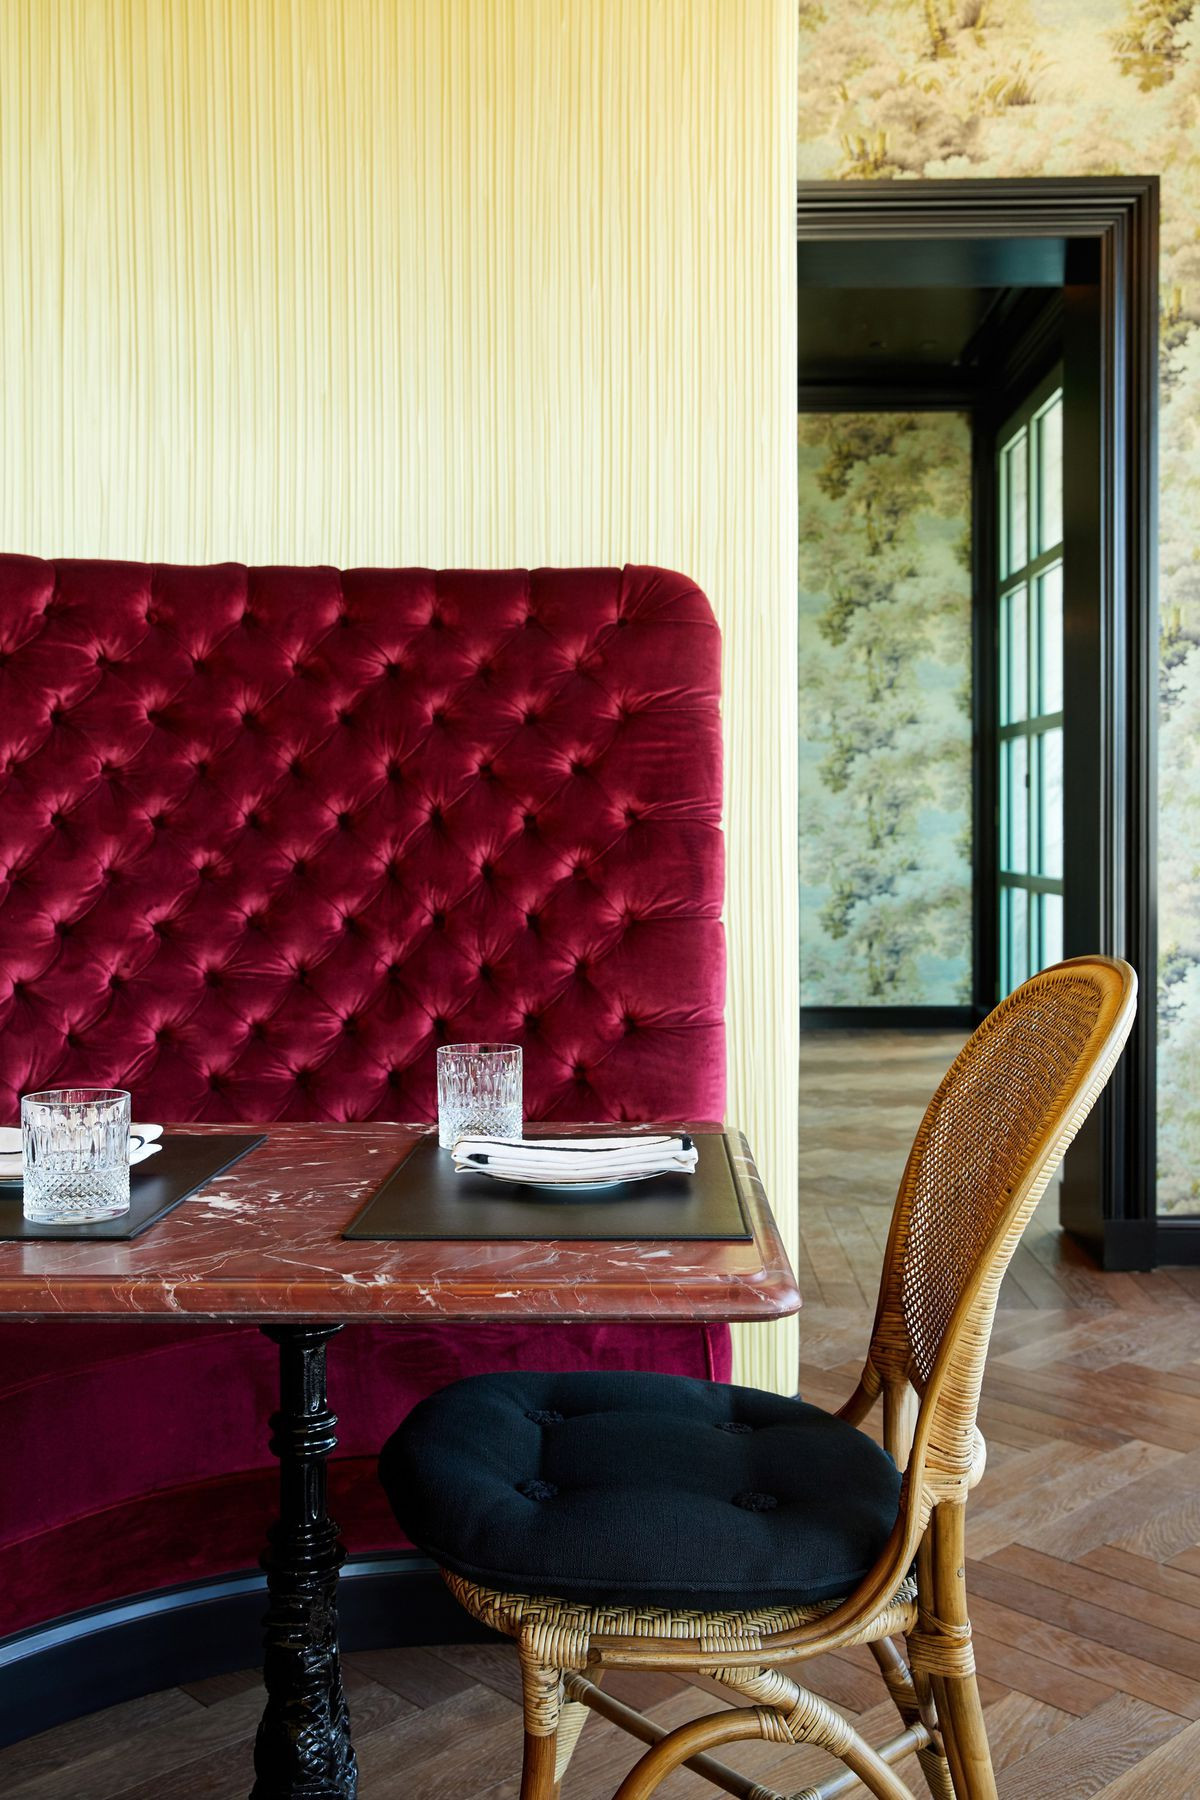 Table with wicker chair and platemat at Gucci Osteria.